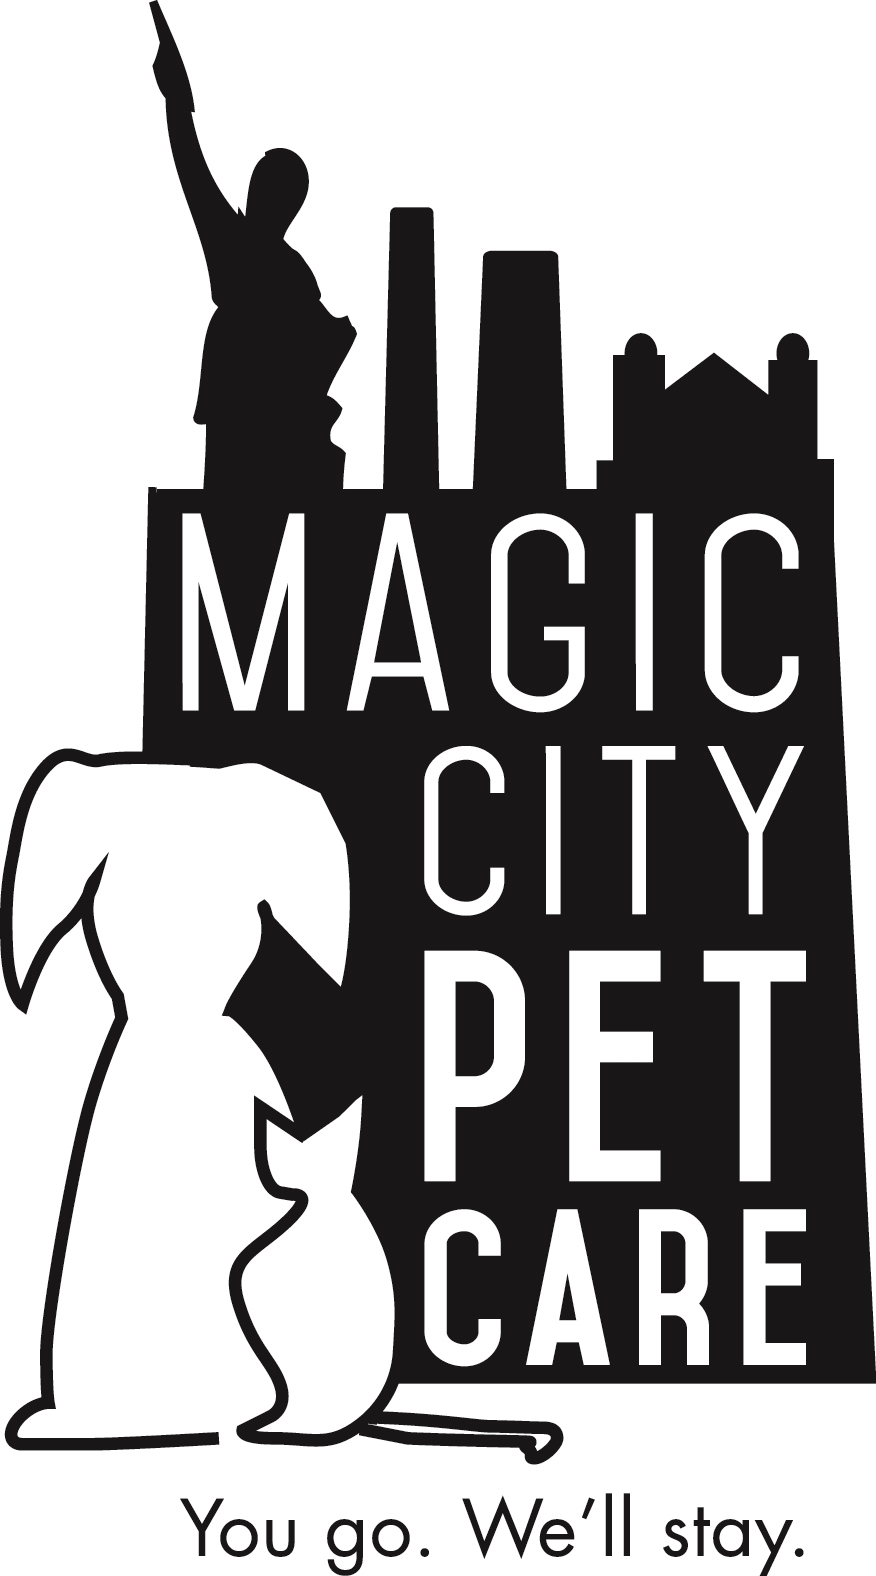 Pet Sitting | Birmingham, Alabama